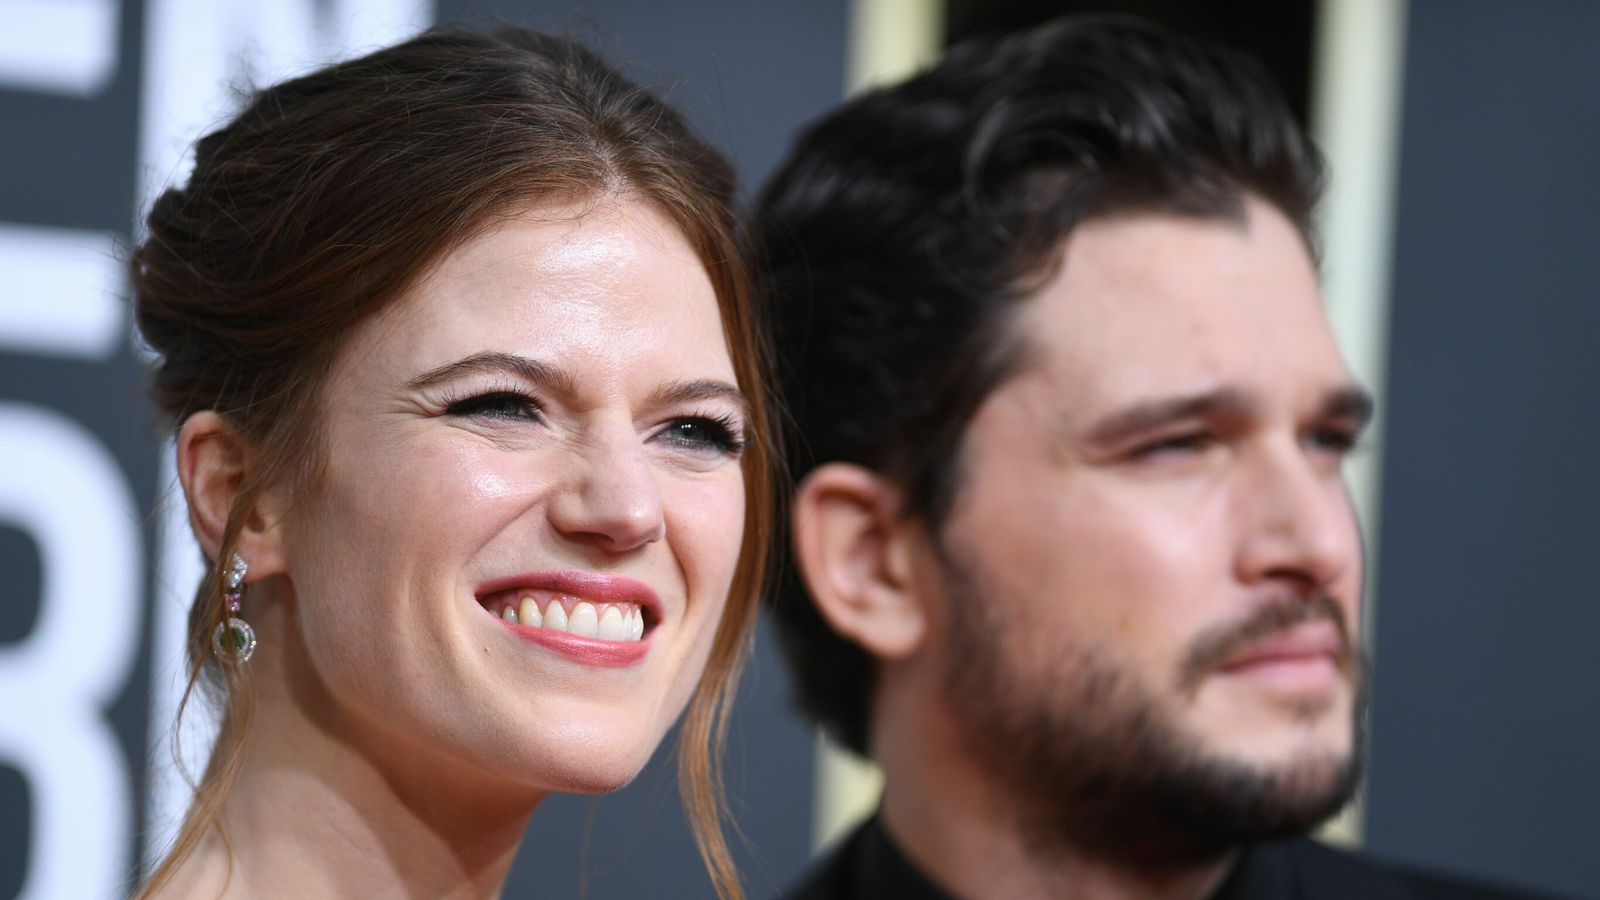 Baby bump photo reveals Game Of Thrones couple expecting first child